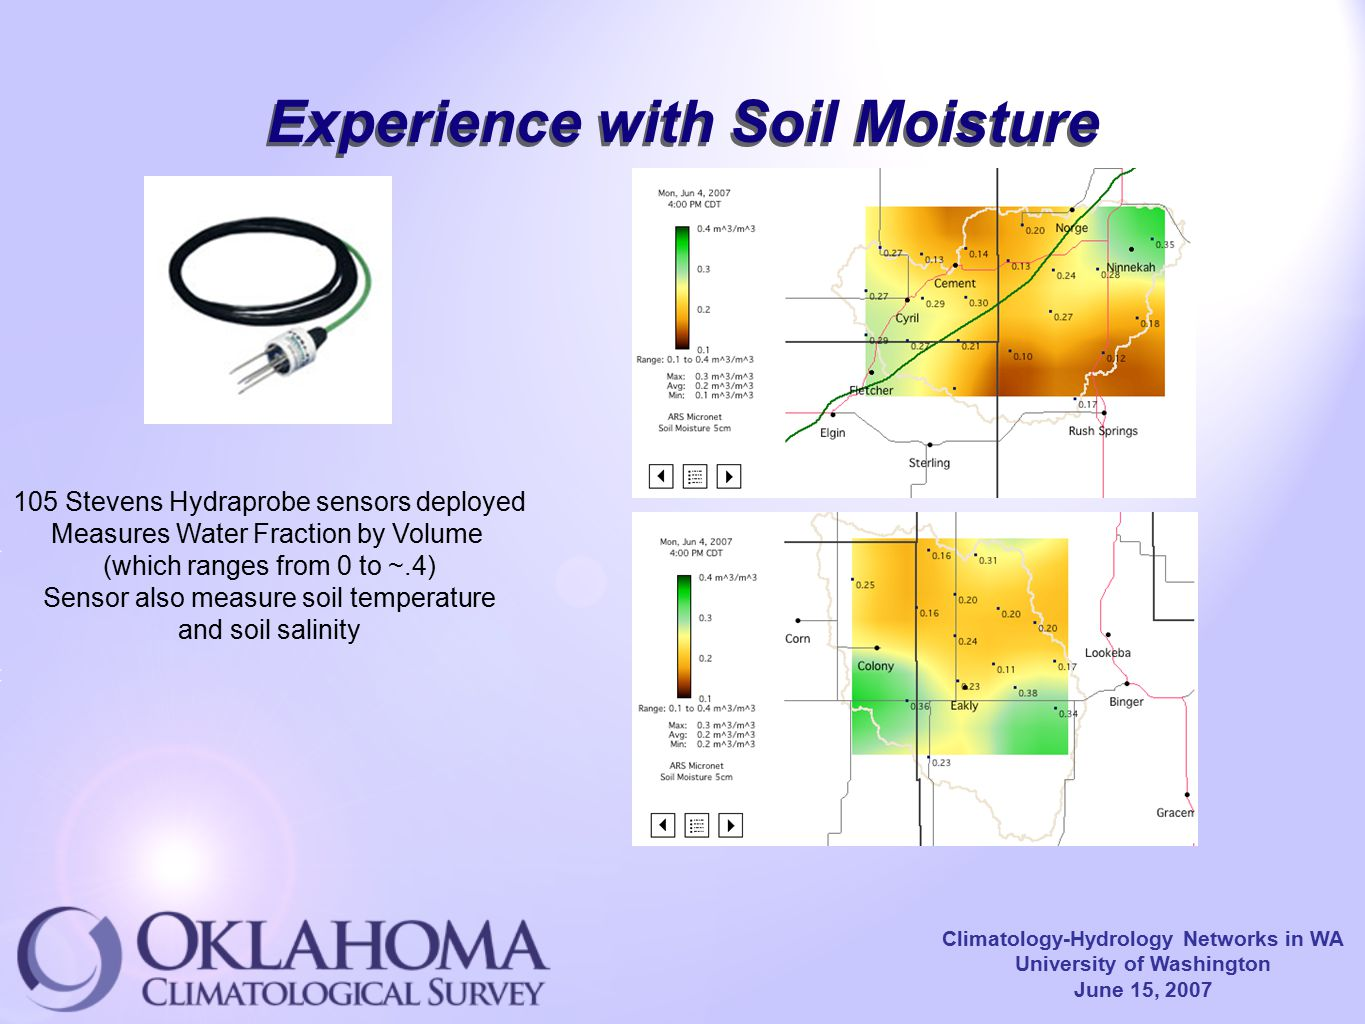 Climatology-Hydrology Networks in WA University of Washington June 15, 2007 Experience with Soil Moisture 105 Stevens Hydraprobe sensors deployed Measures Water Fraction by Volume (which ranges from 0 to ~.4) Sensor also measure soil temperature and soil salinity